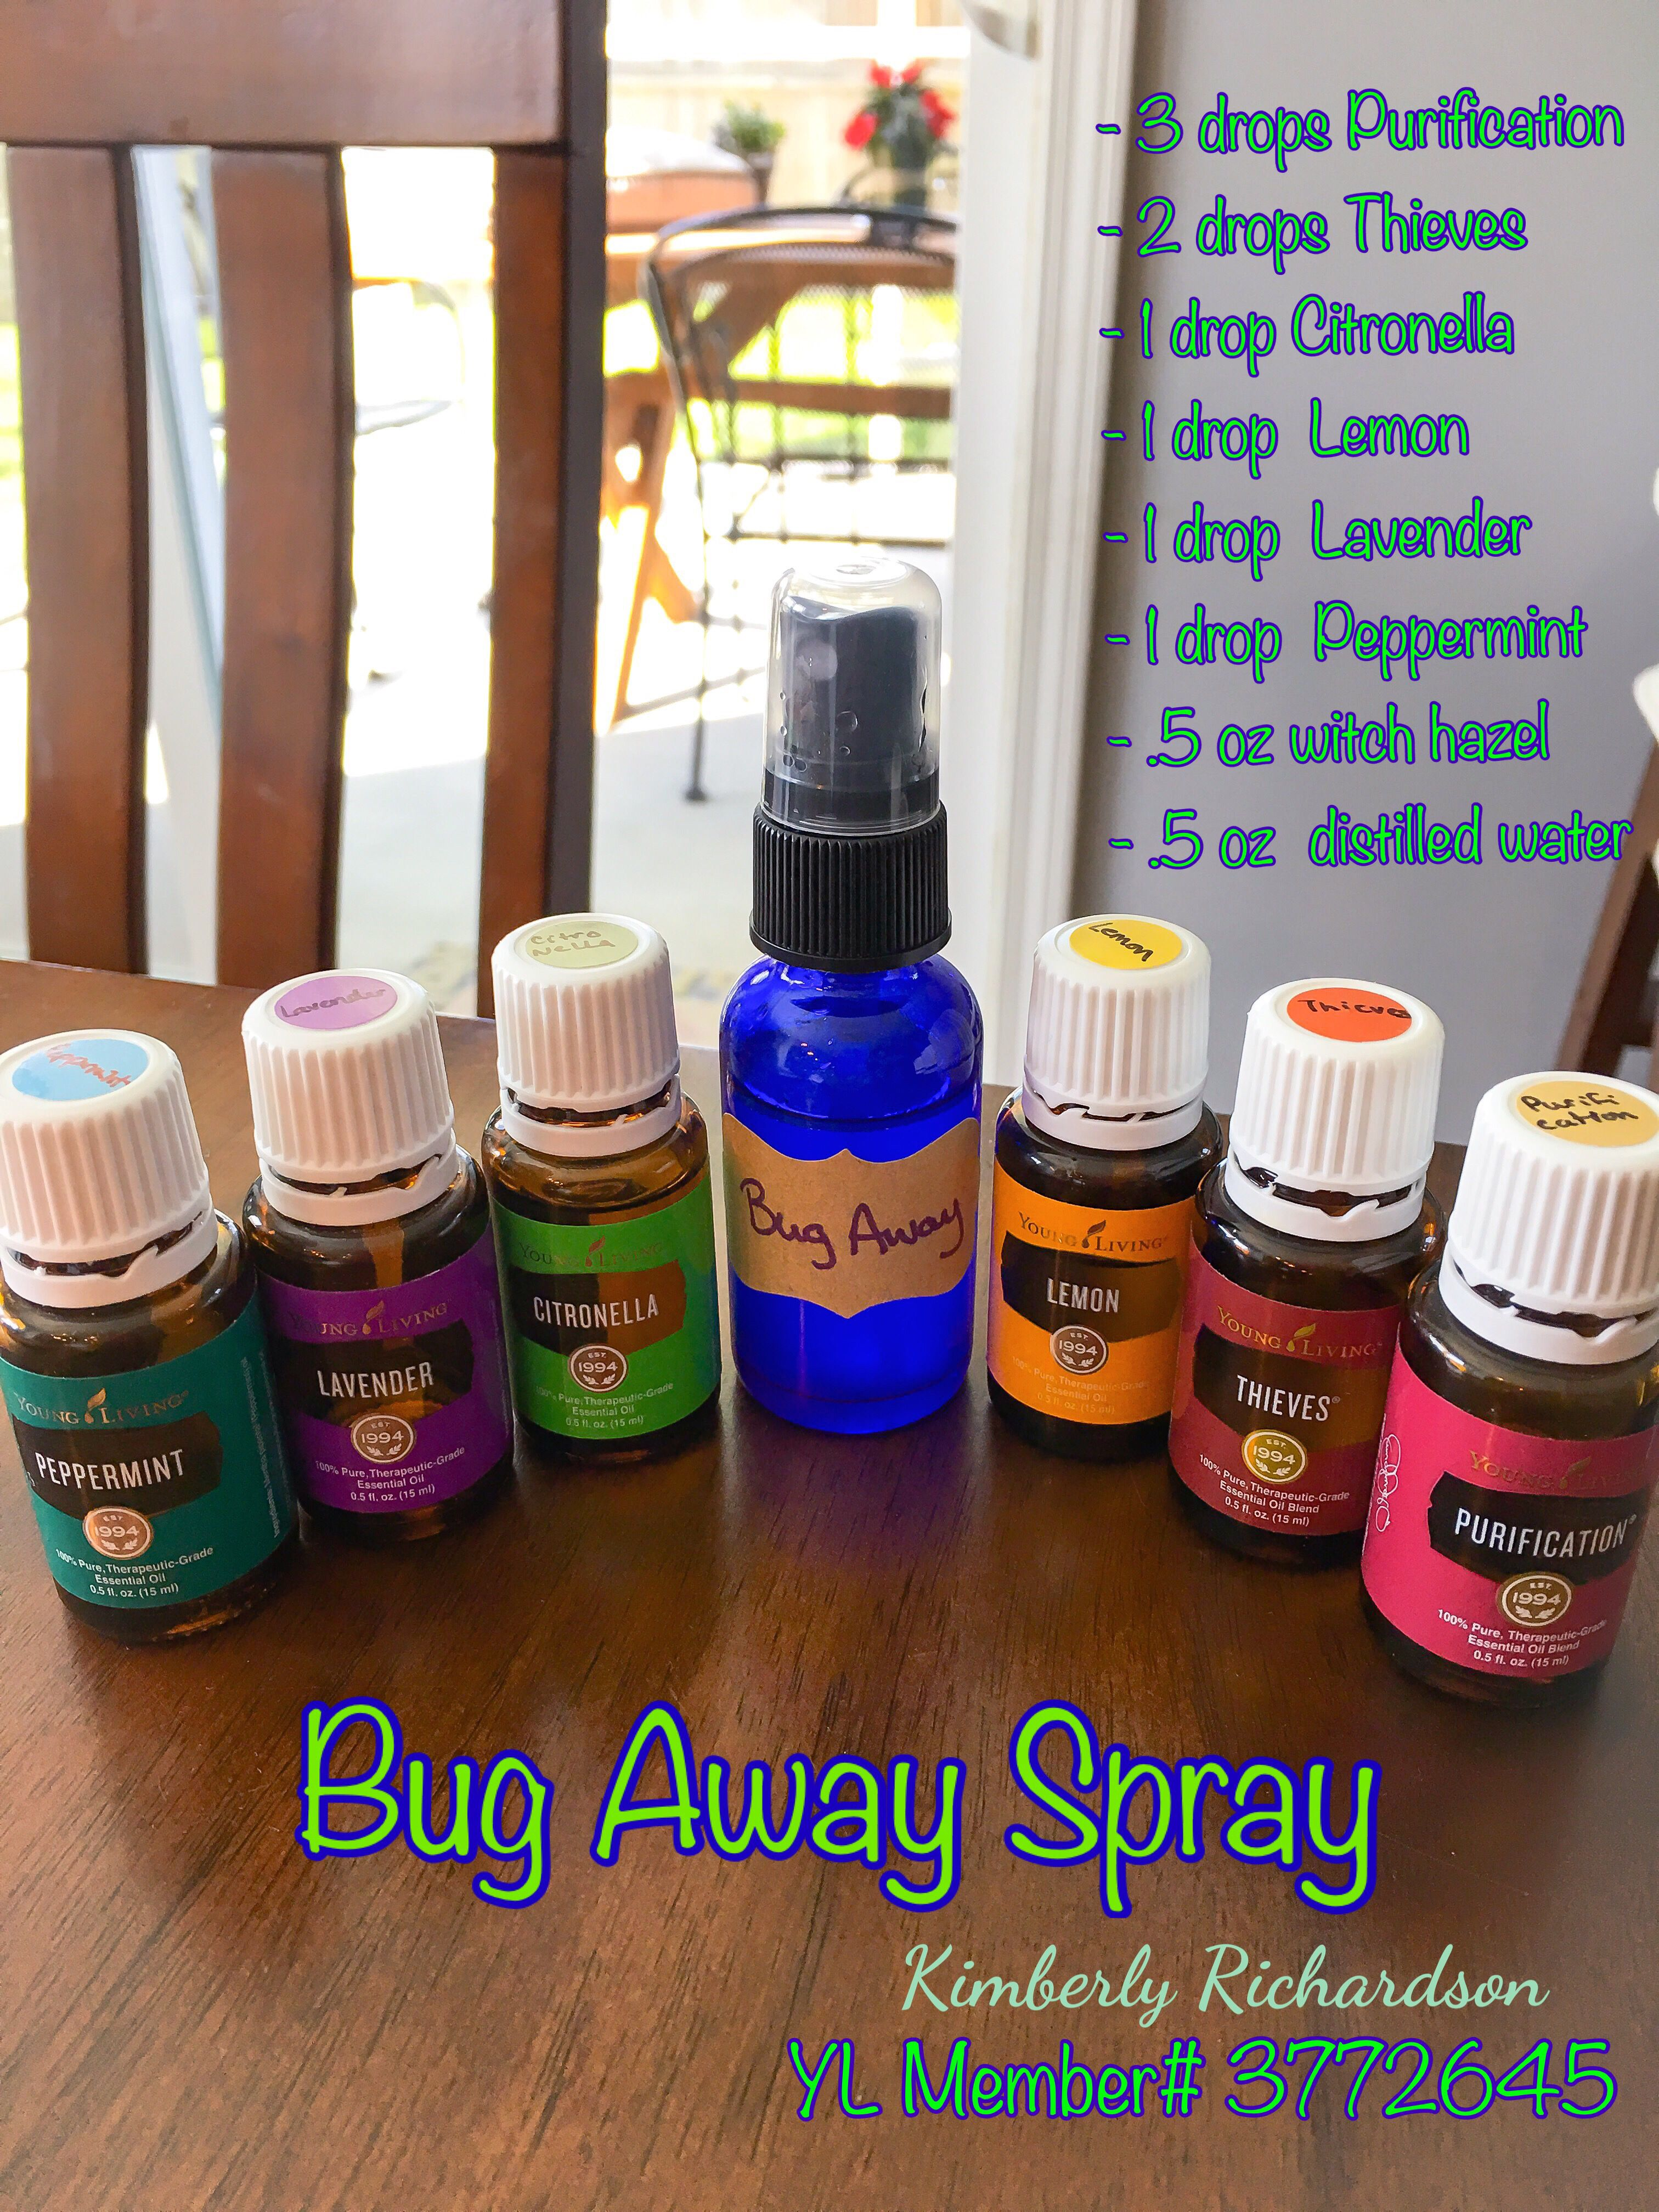 Pin by Ballerina Belle on Essential Oils (With images